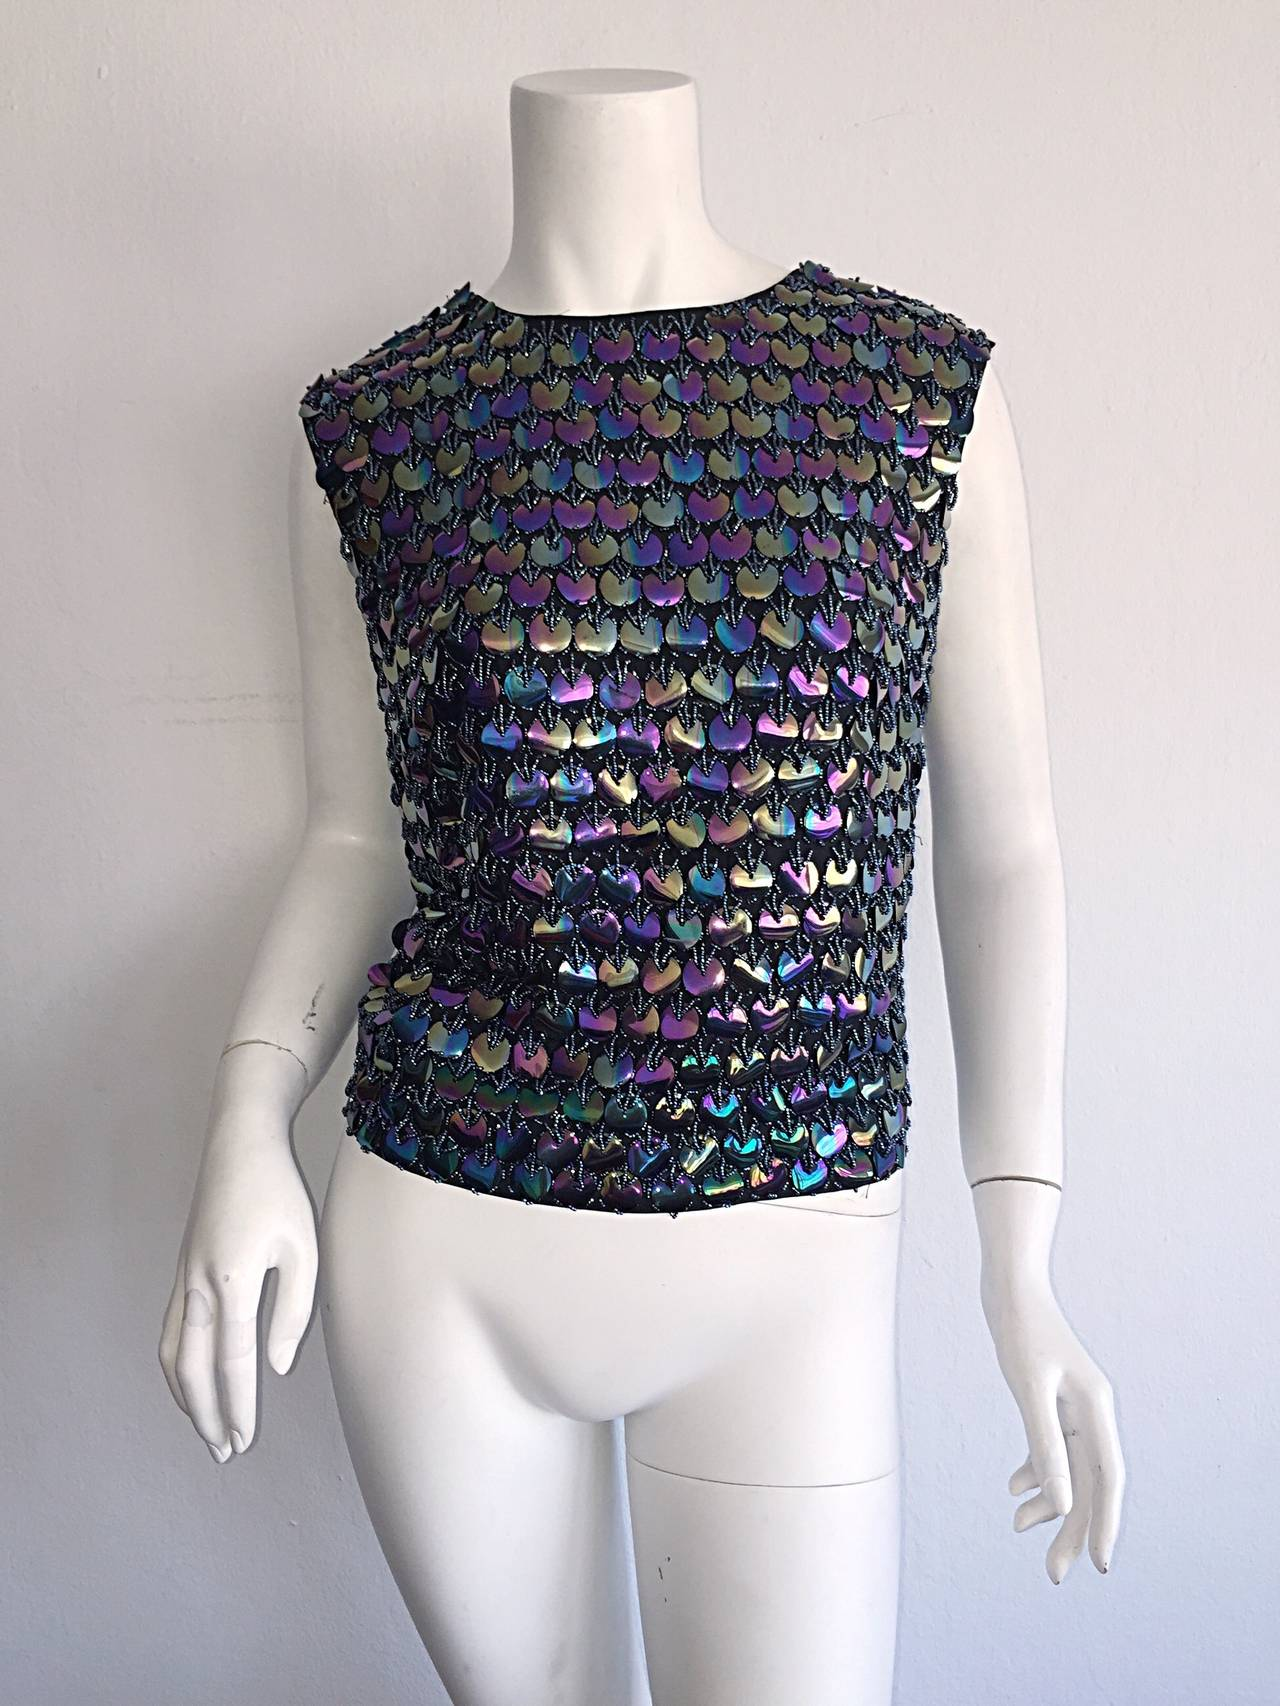 Fabulous 1950s Gene Shelly's Fully Beaded Iridescent Paillettes Silk Blouse Top For Sale 2